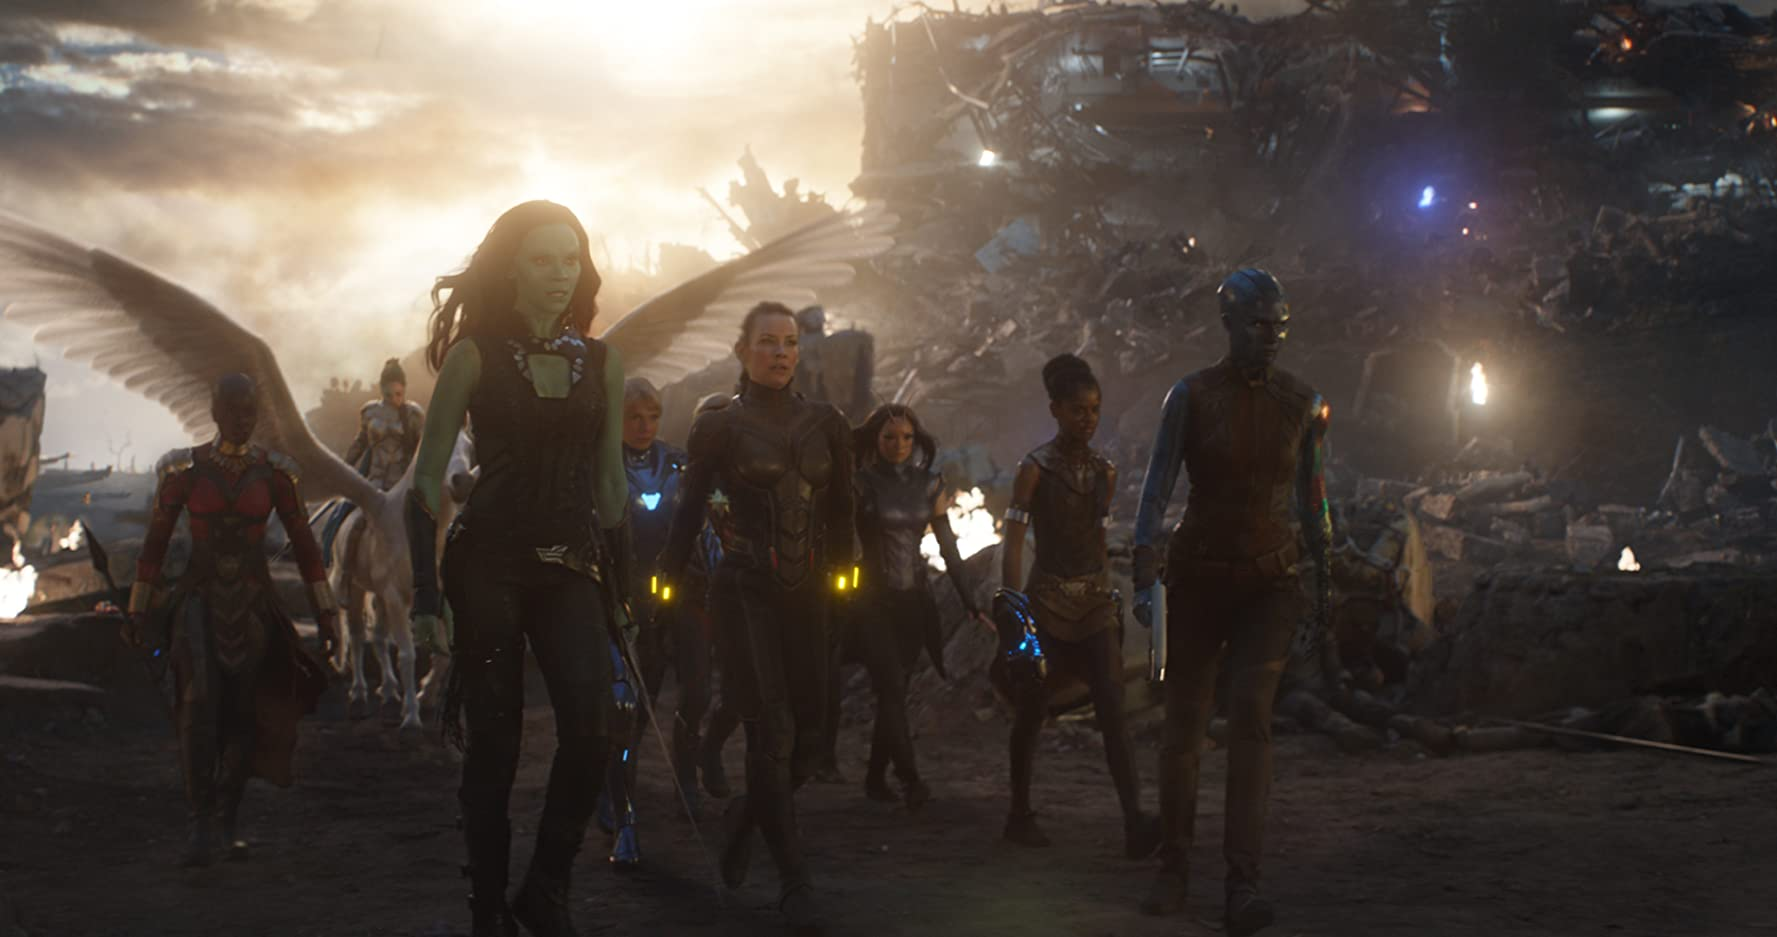 Gwyneth Paltrow, Zoe Saldana, Evangeline Lilly, Danai Gurira, Tessa Thompson, Karen Gillan, Pom Klementieff, and Letitia Wright in Avengers: Endgame (2019)